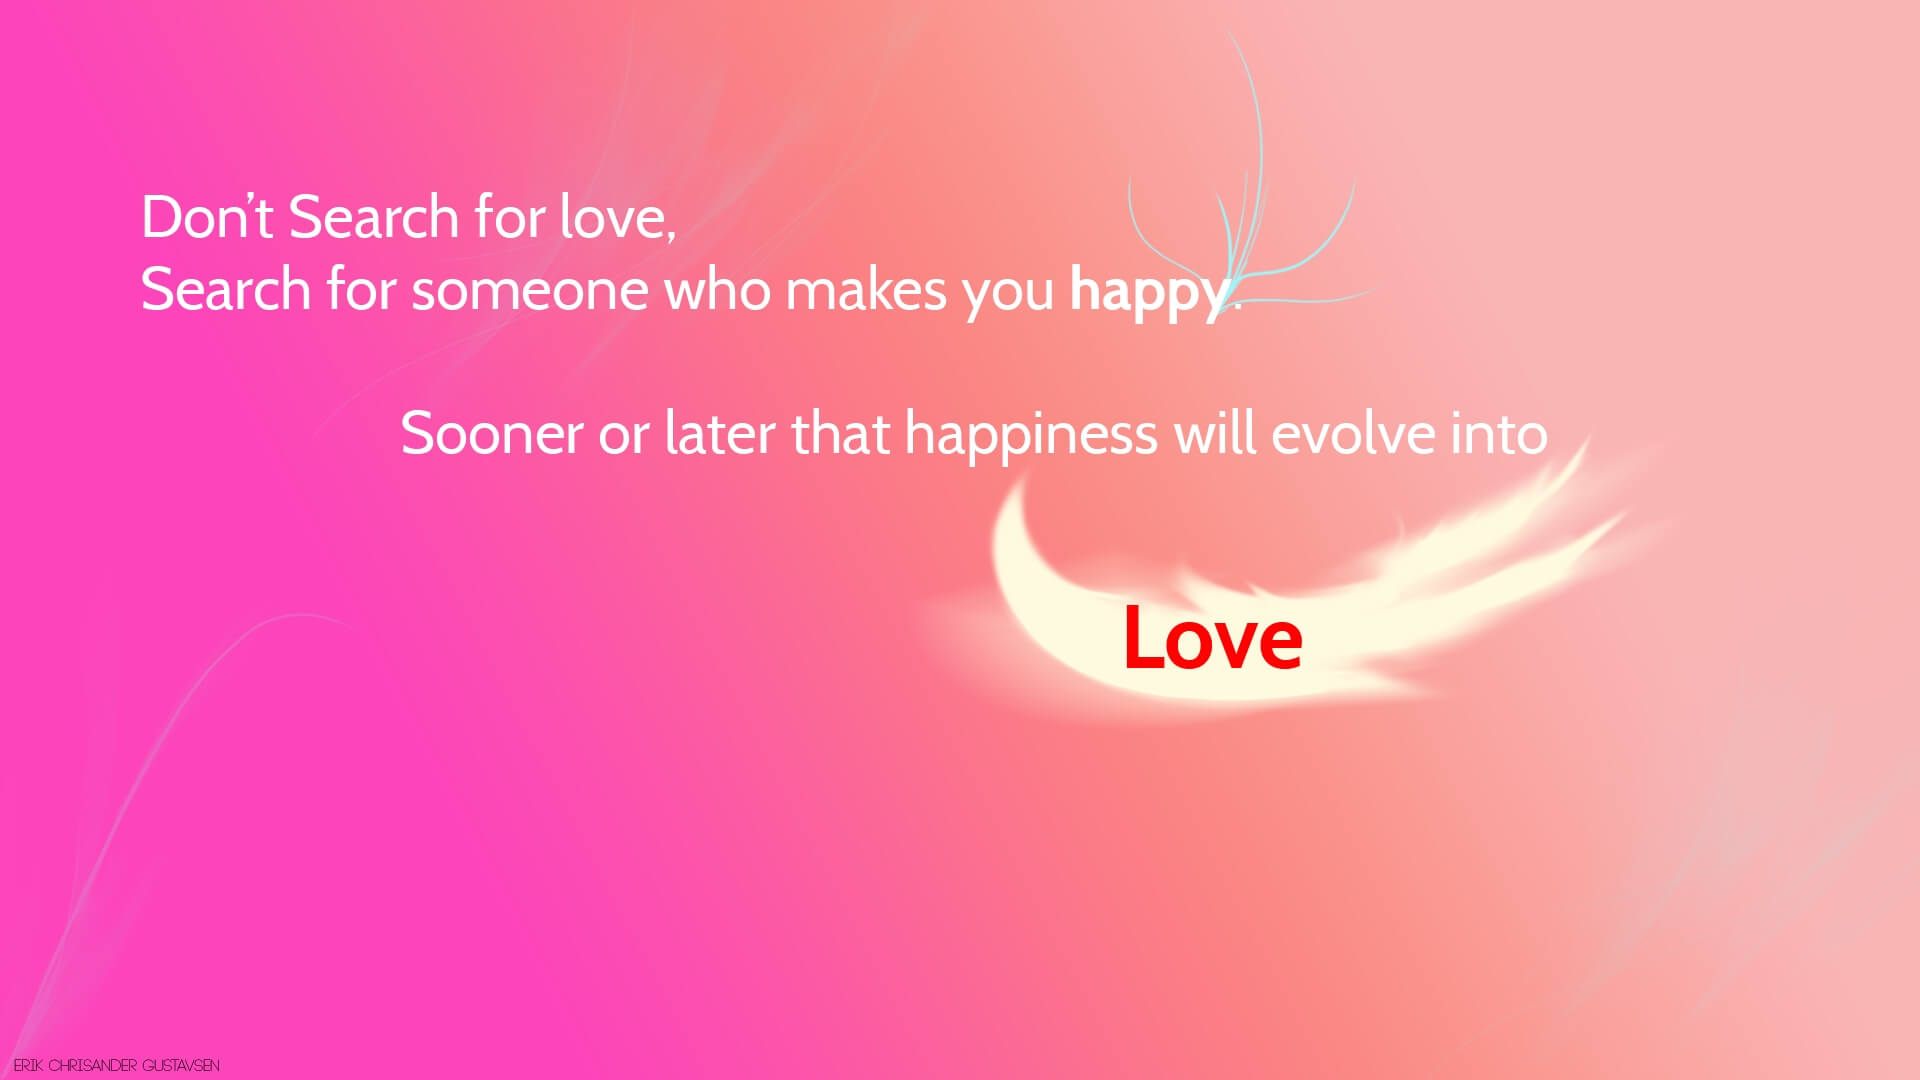 Life Quotes Love Best Cute Love Status For Whatsapp In English  Ienglish Status